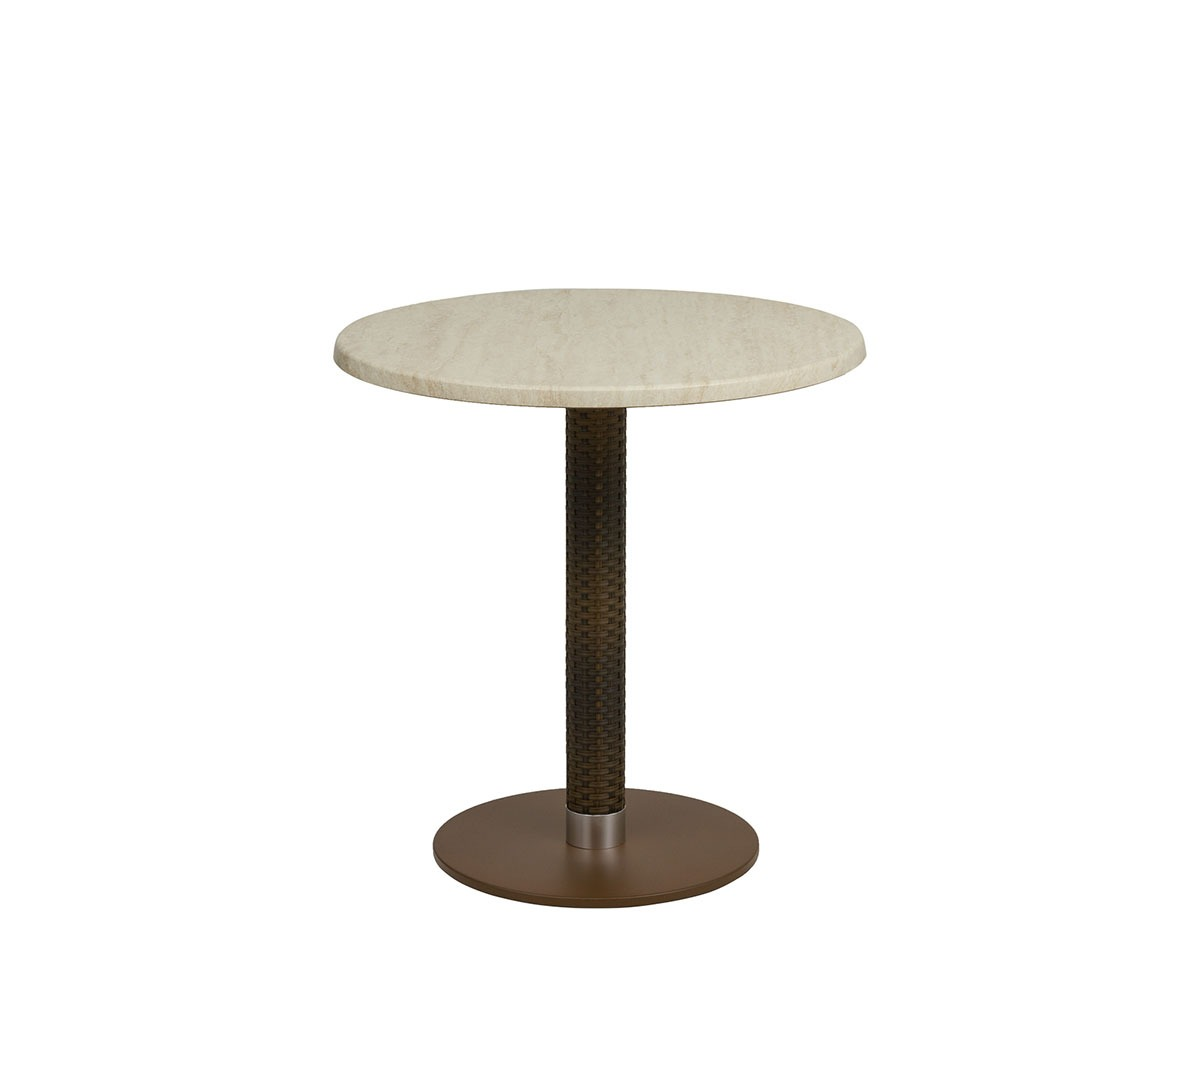 Mesa Golden a 75 aluminio color óxido marrón columna médula café tablero TOP travertino